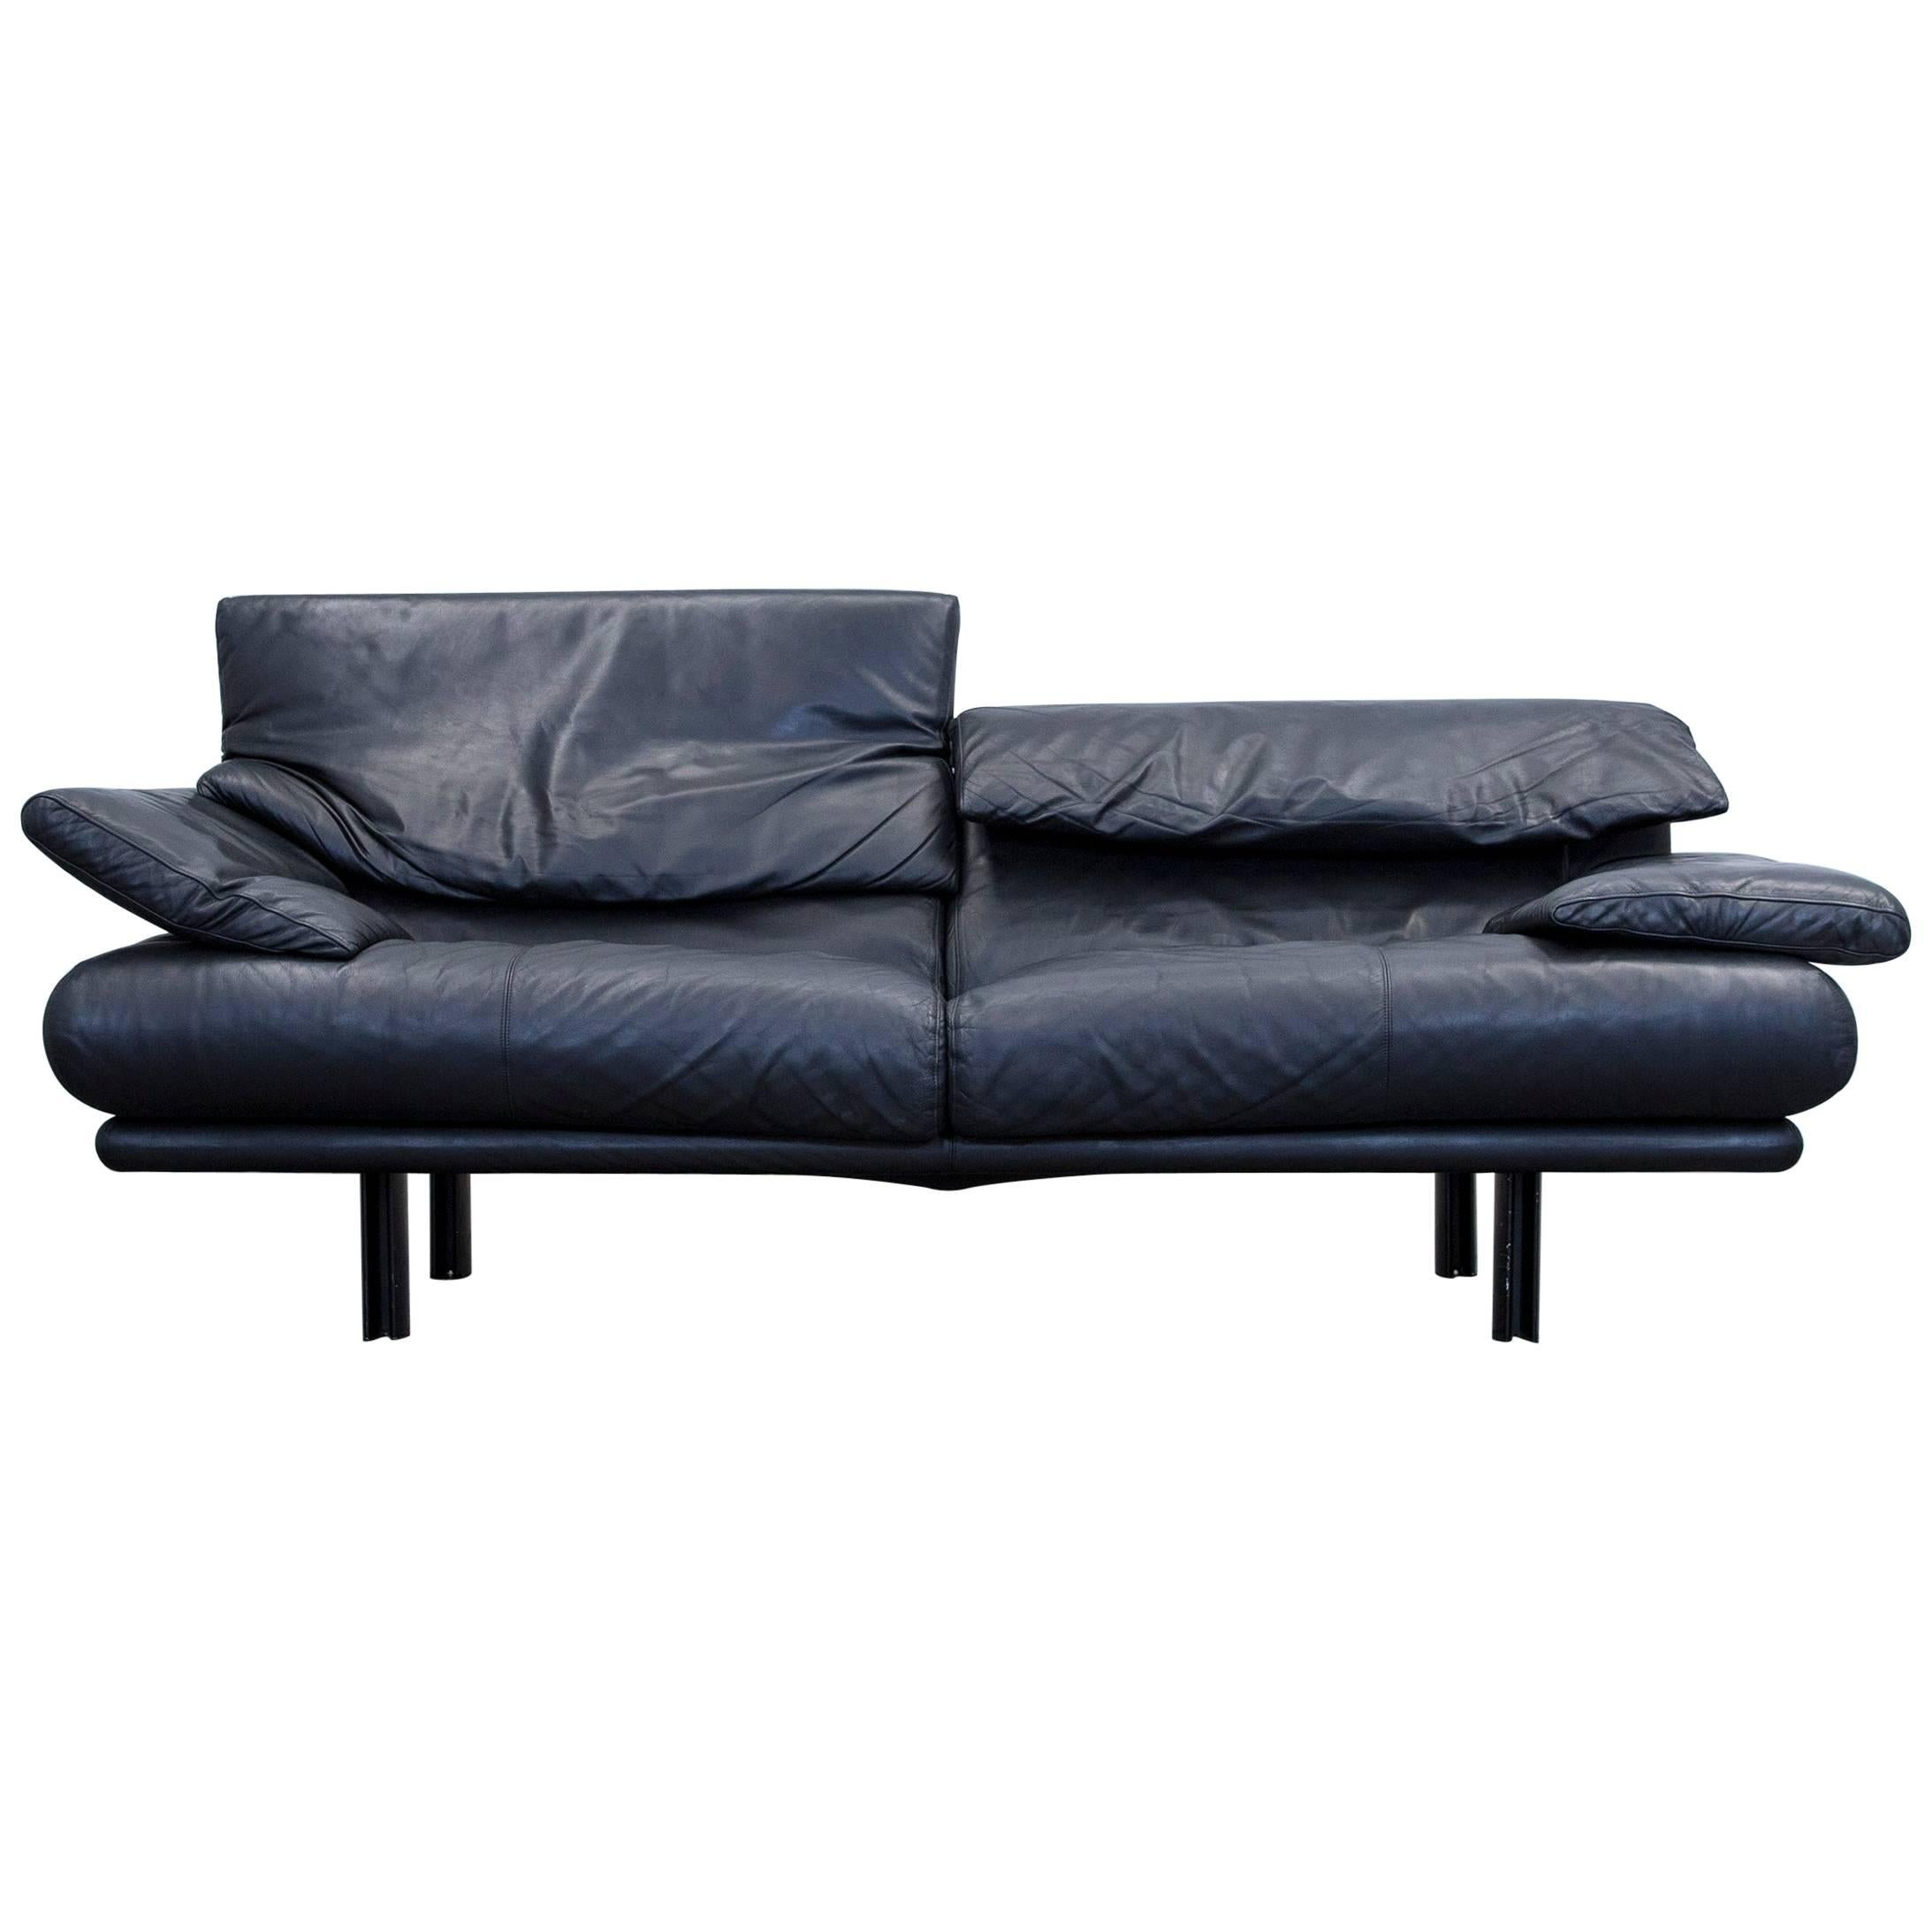 Ledercouch u form  Couch U Form Modern. Excellent After Midcentury Modern With Couch ...